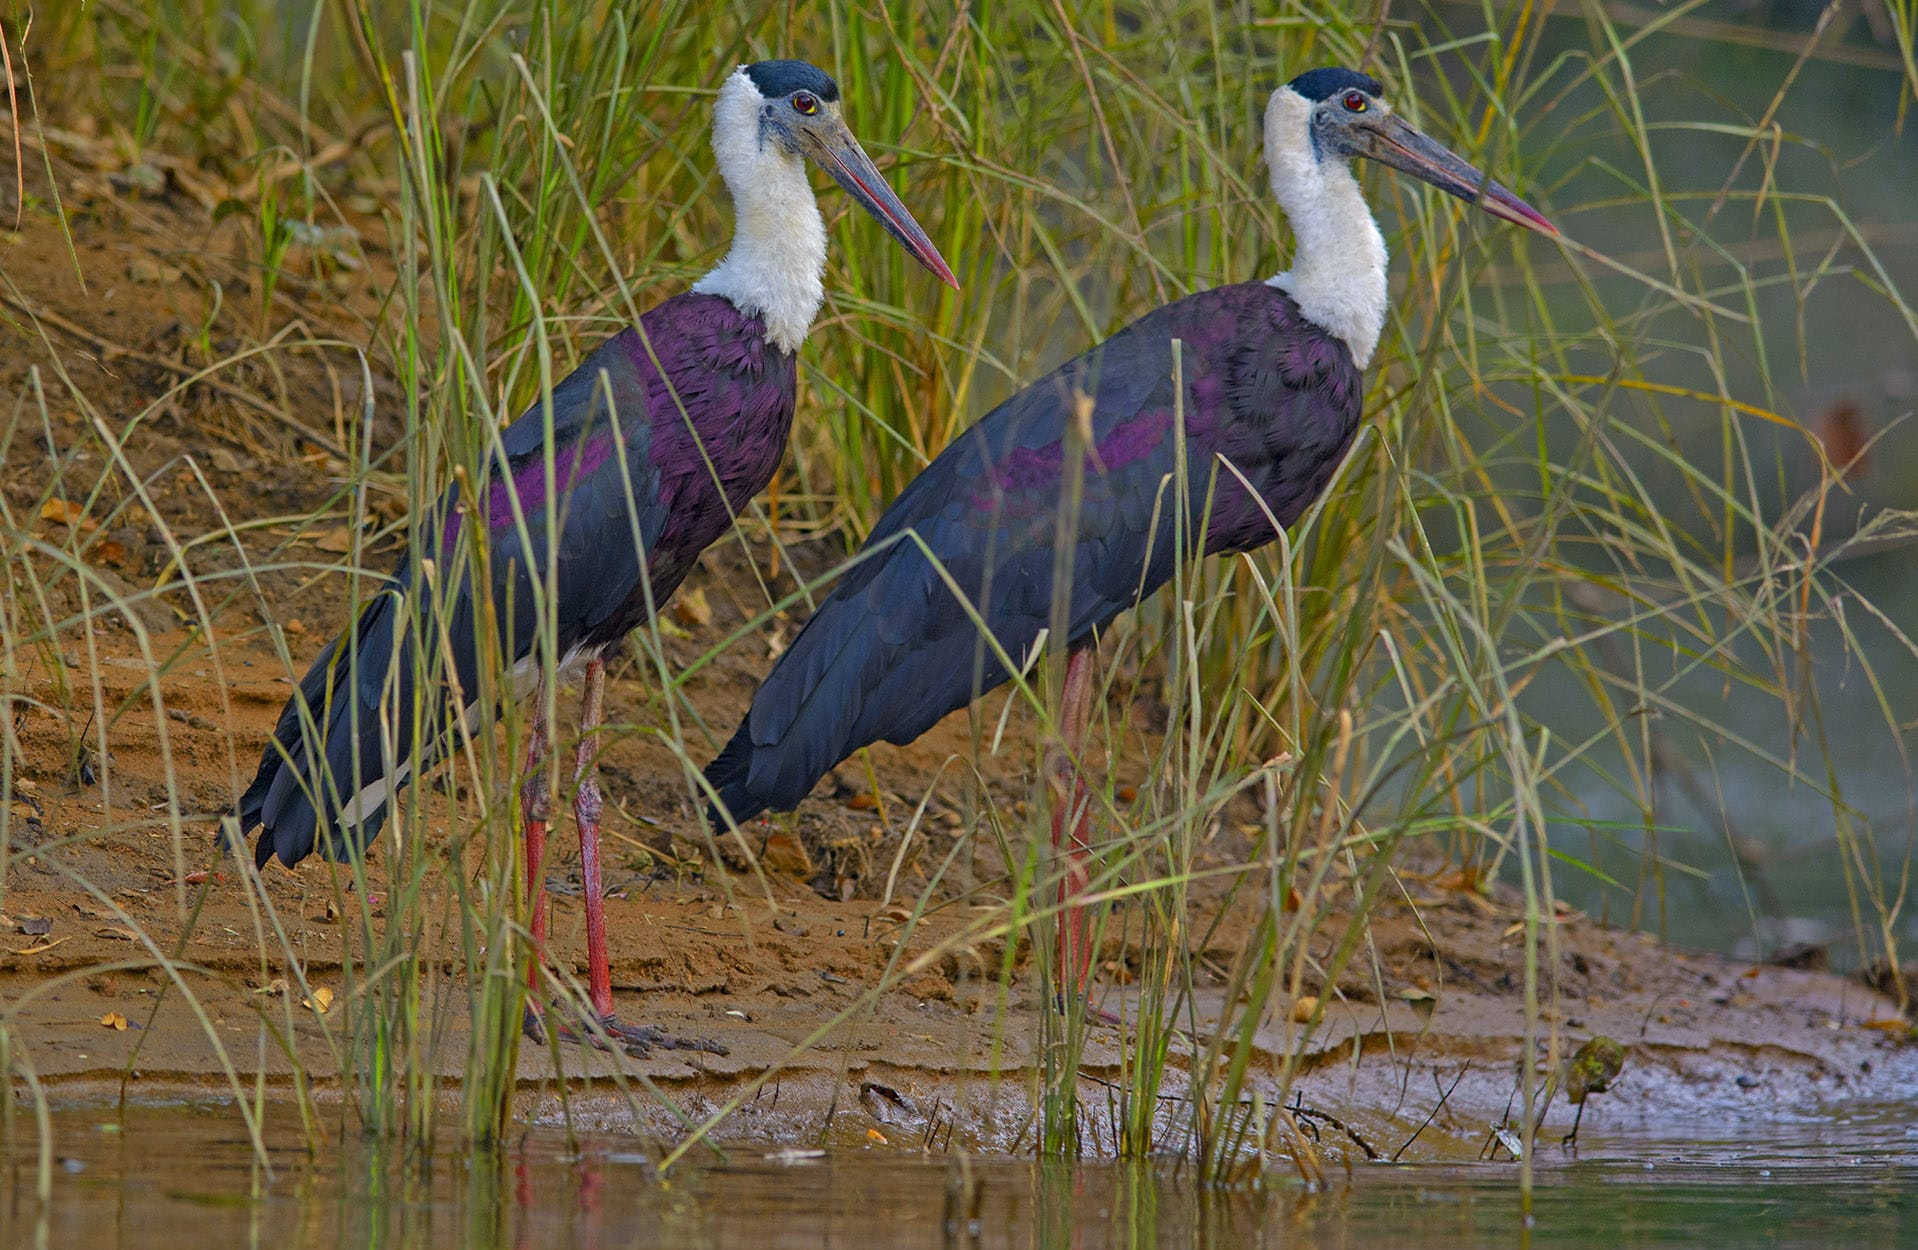 he backwaters of the Denwa River are popular with birders trying to spot waders such as woolly-necked storks (above right).